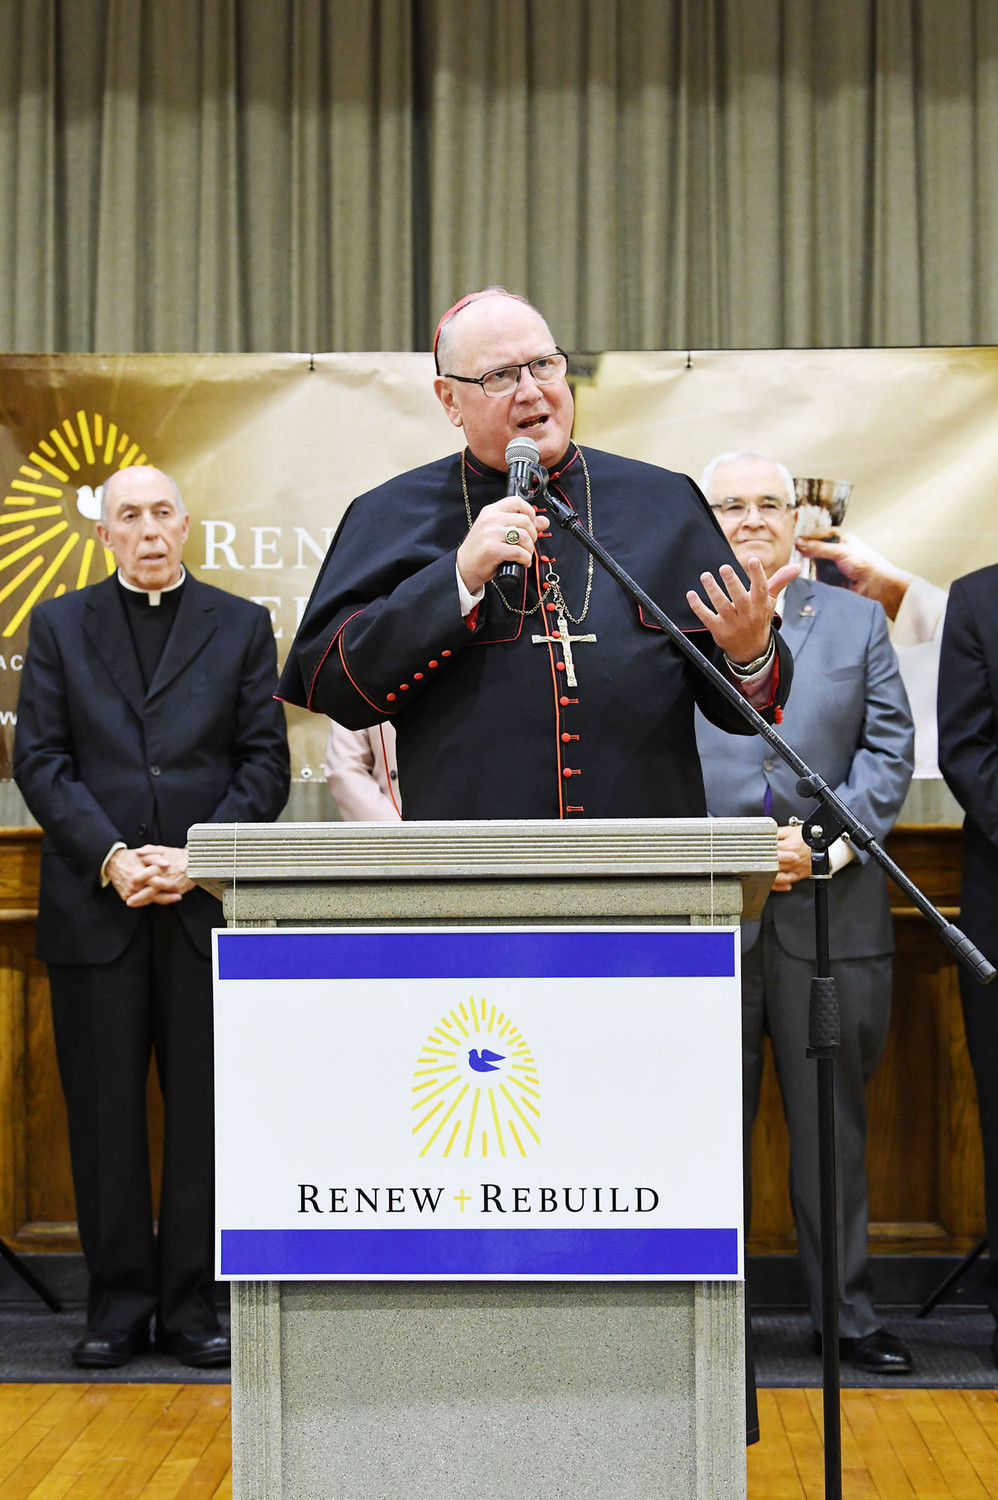 Cardinal Dolan and other officials formally introduced Renew + Rebuild, the archdiocese's parish fund-raising campaign, at a press conference Oct. 5 in Conran Hall at St. Teresa's parish, Staten Island.